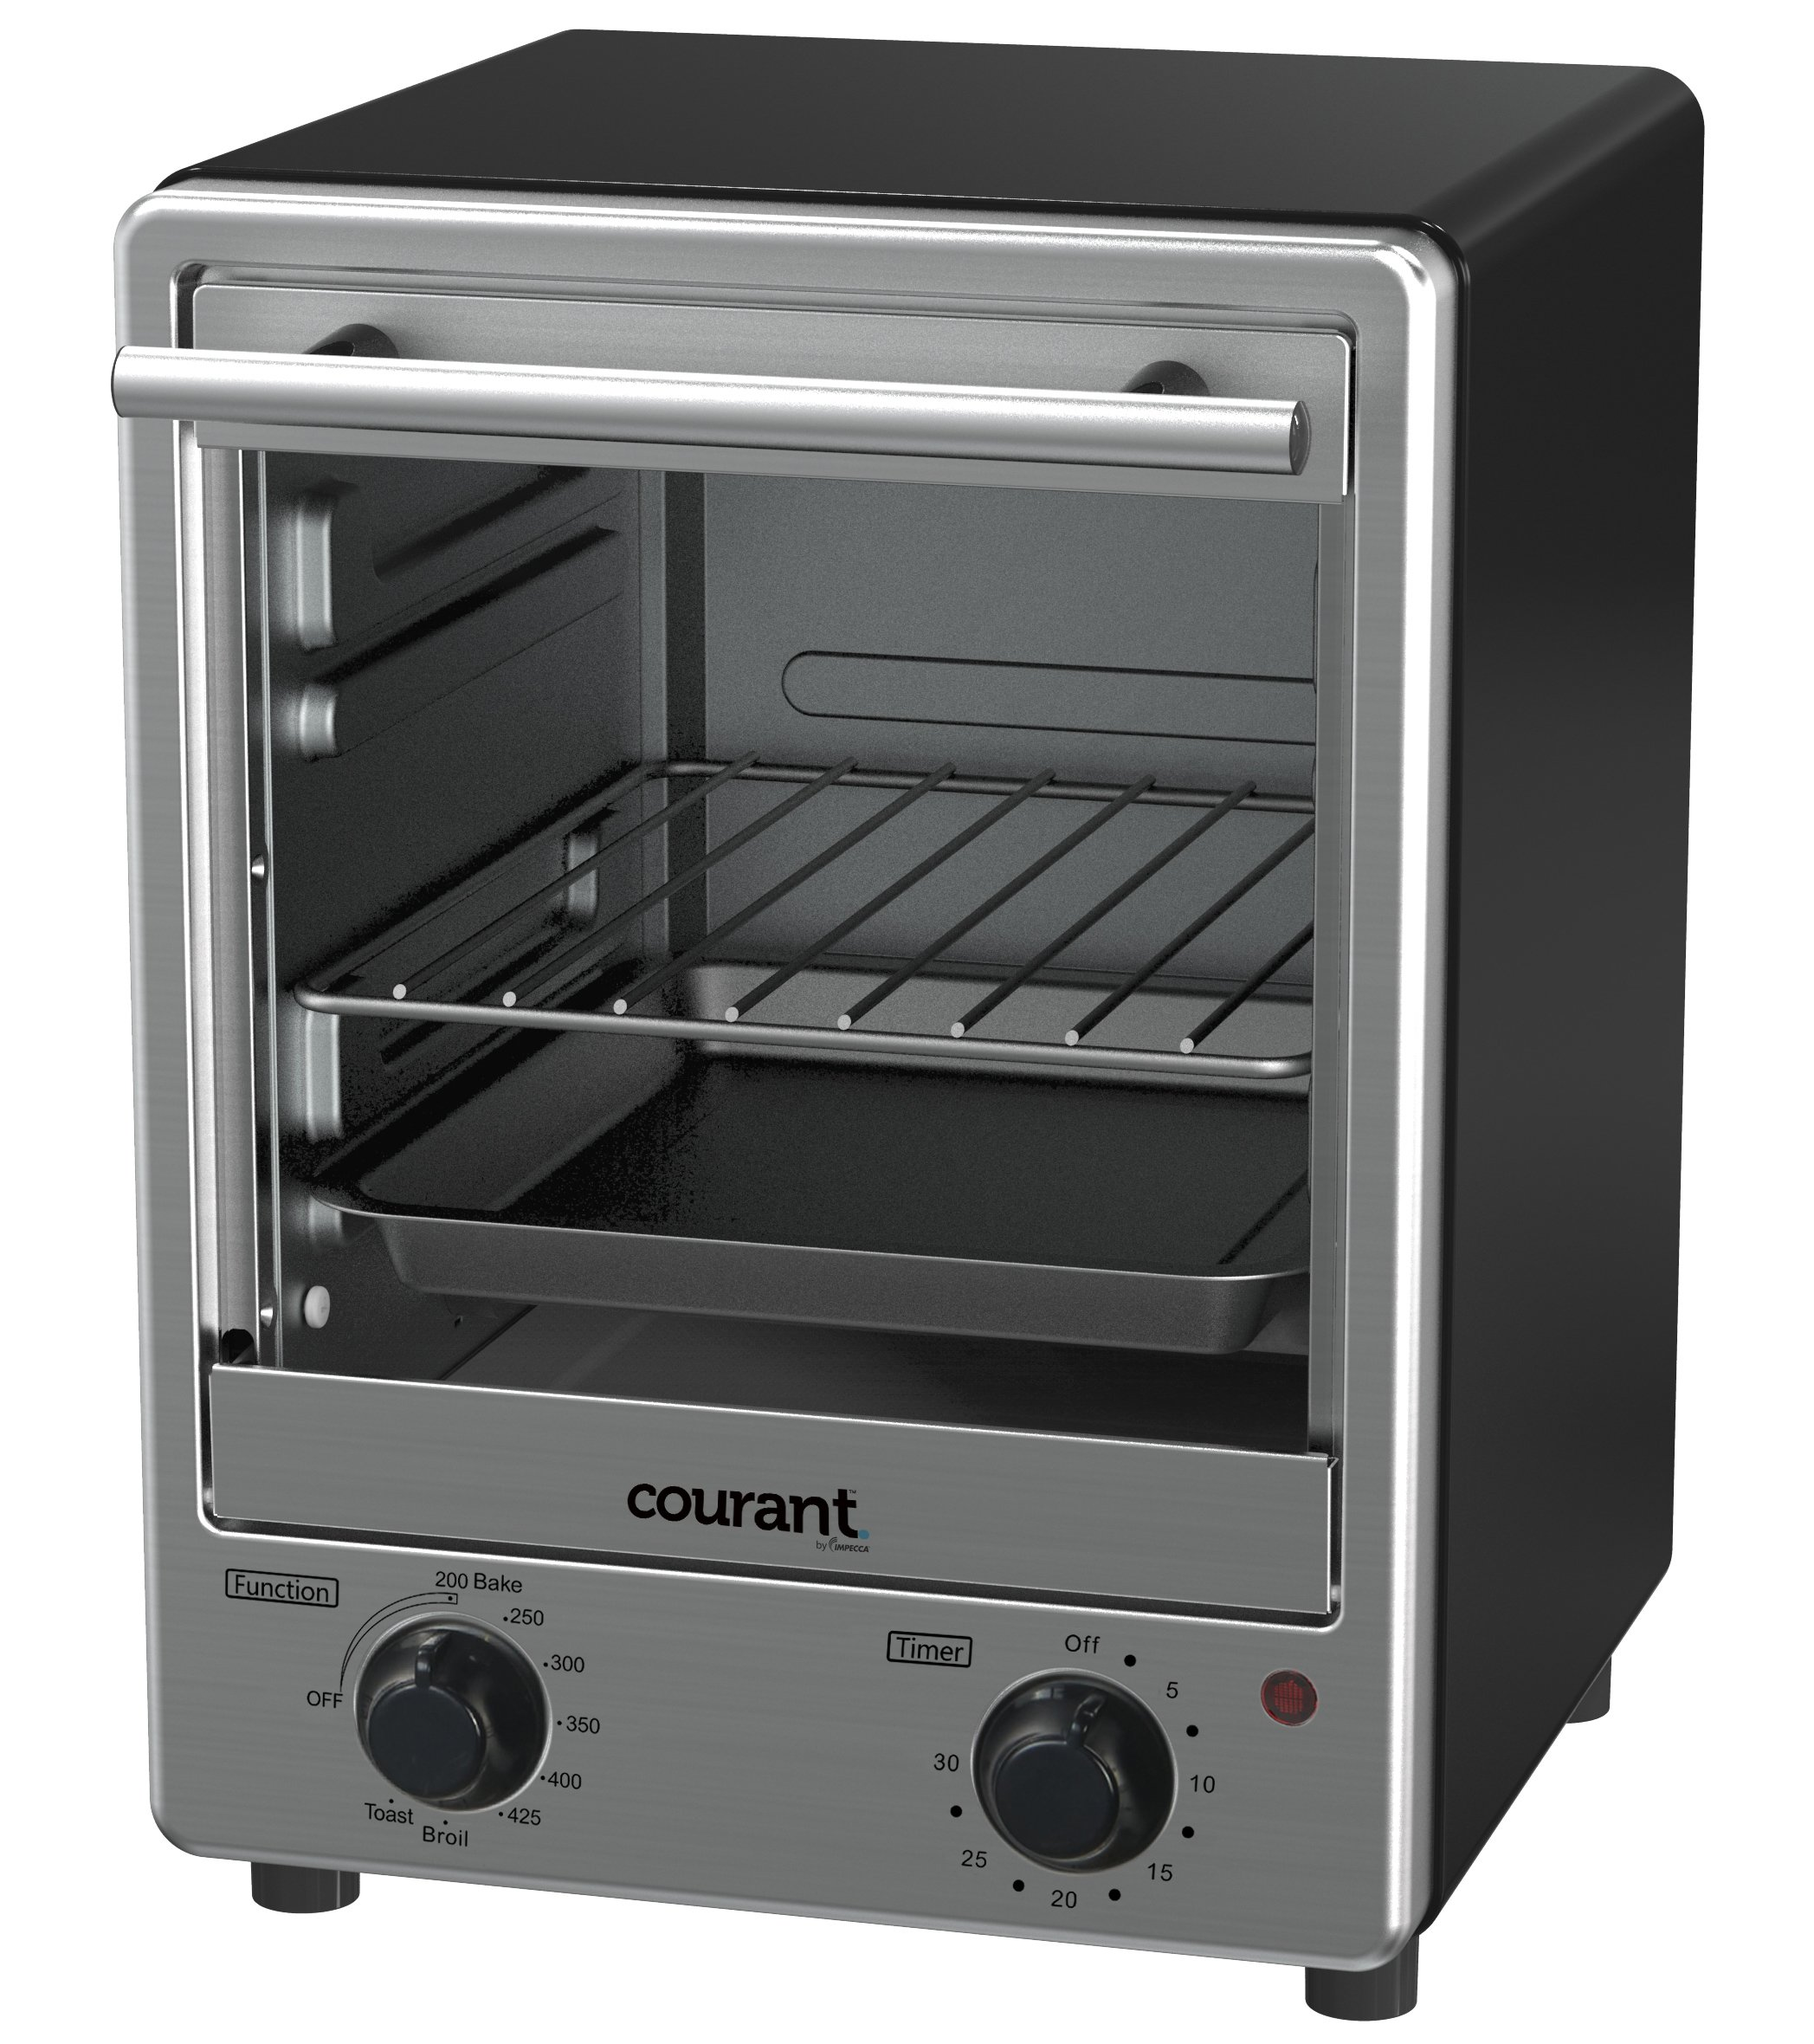 Courant Stainless Steel Toaster Oven with Tempered Glass Door and Galvanized Interior by Courant (Image #2)